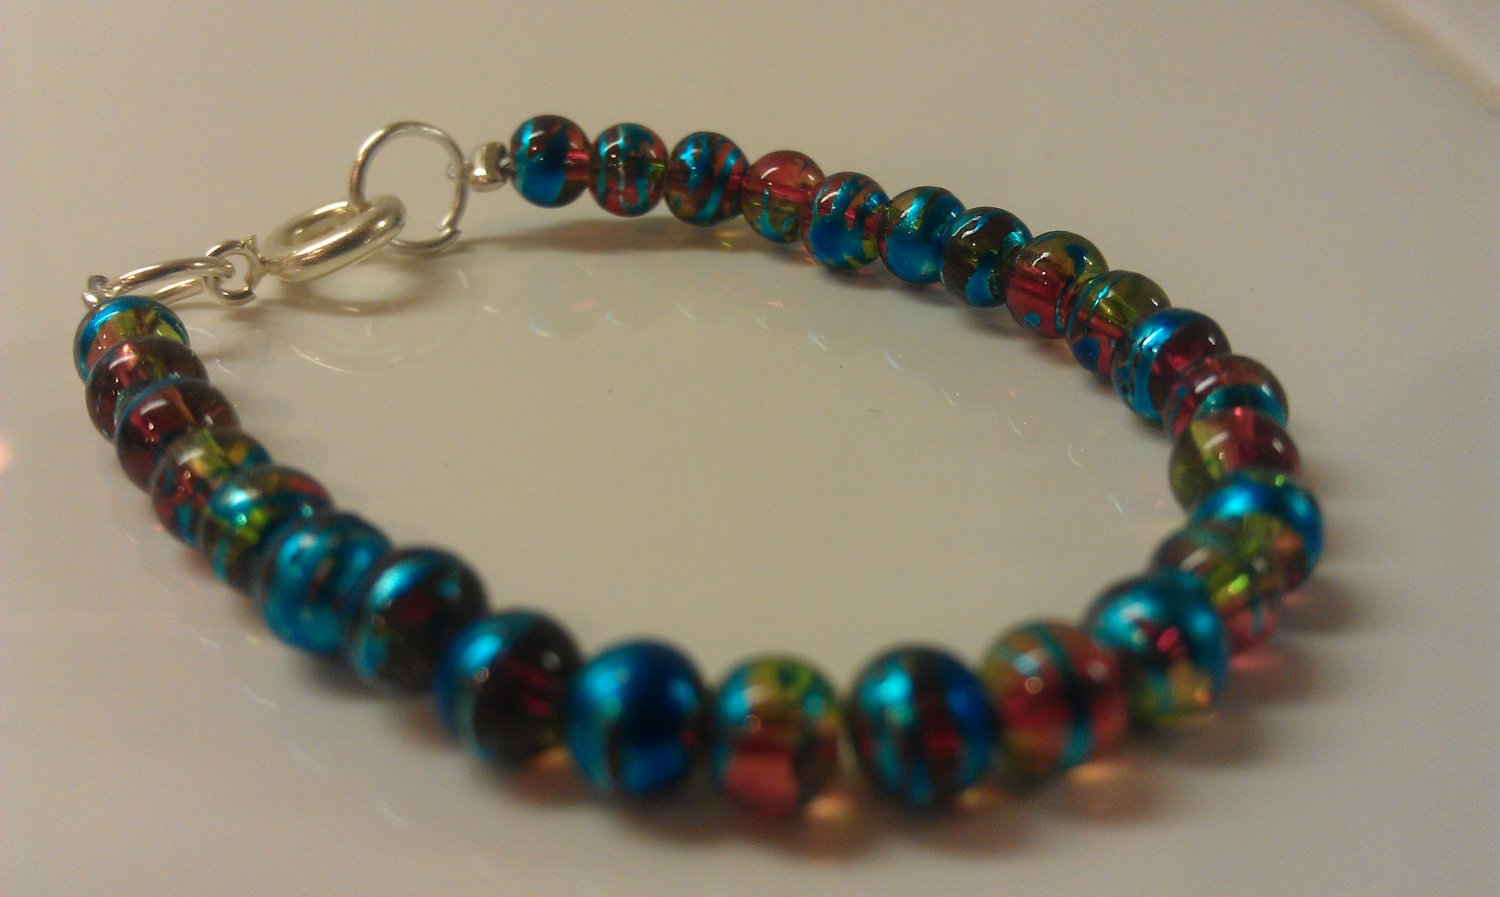 6-12 Months: Metallic Blue Czech Glass Baby Bracelet